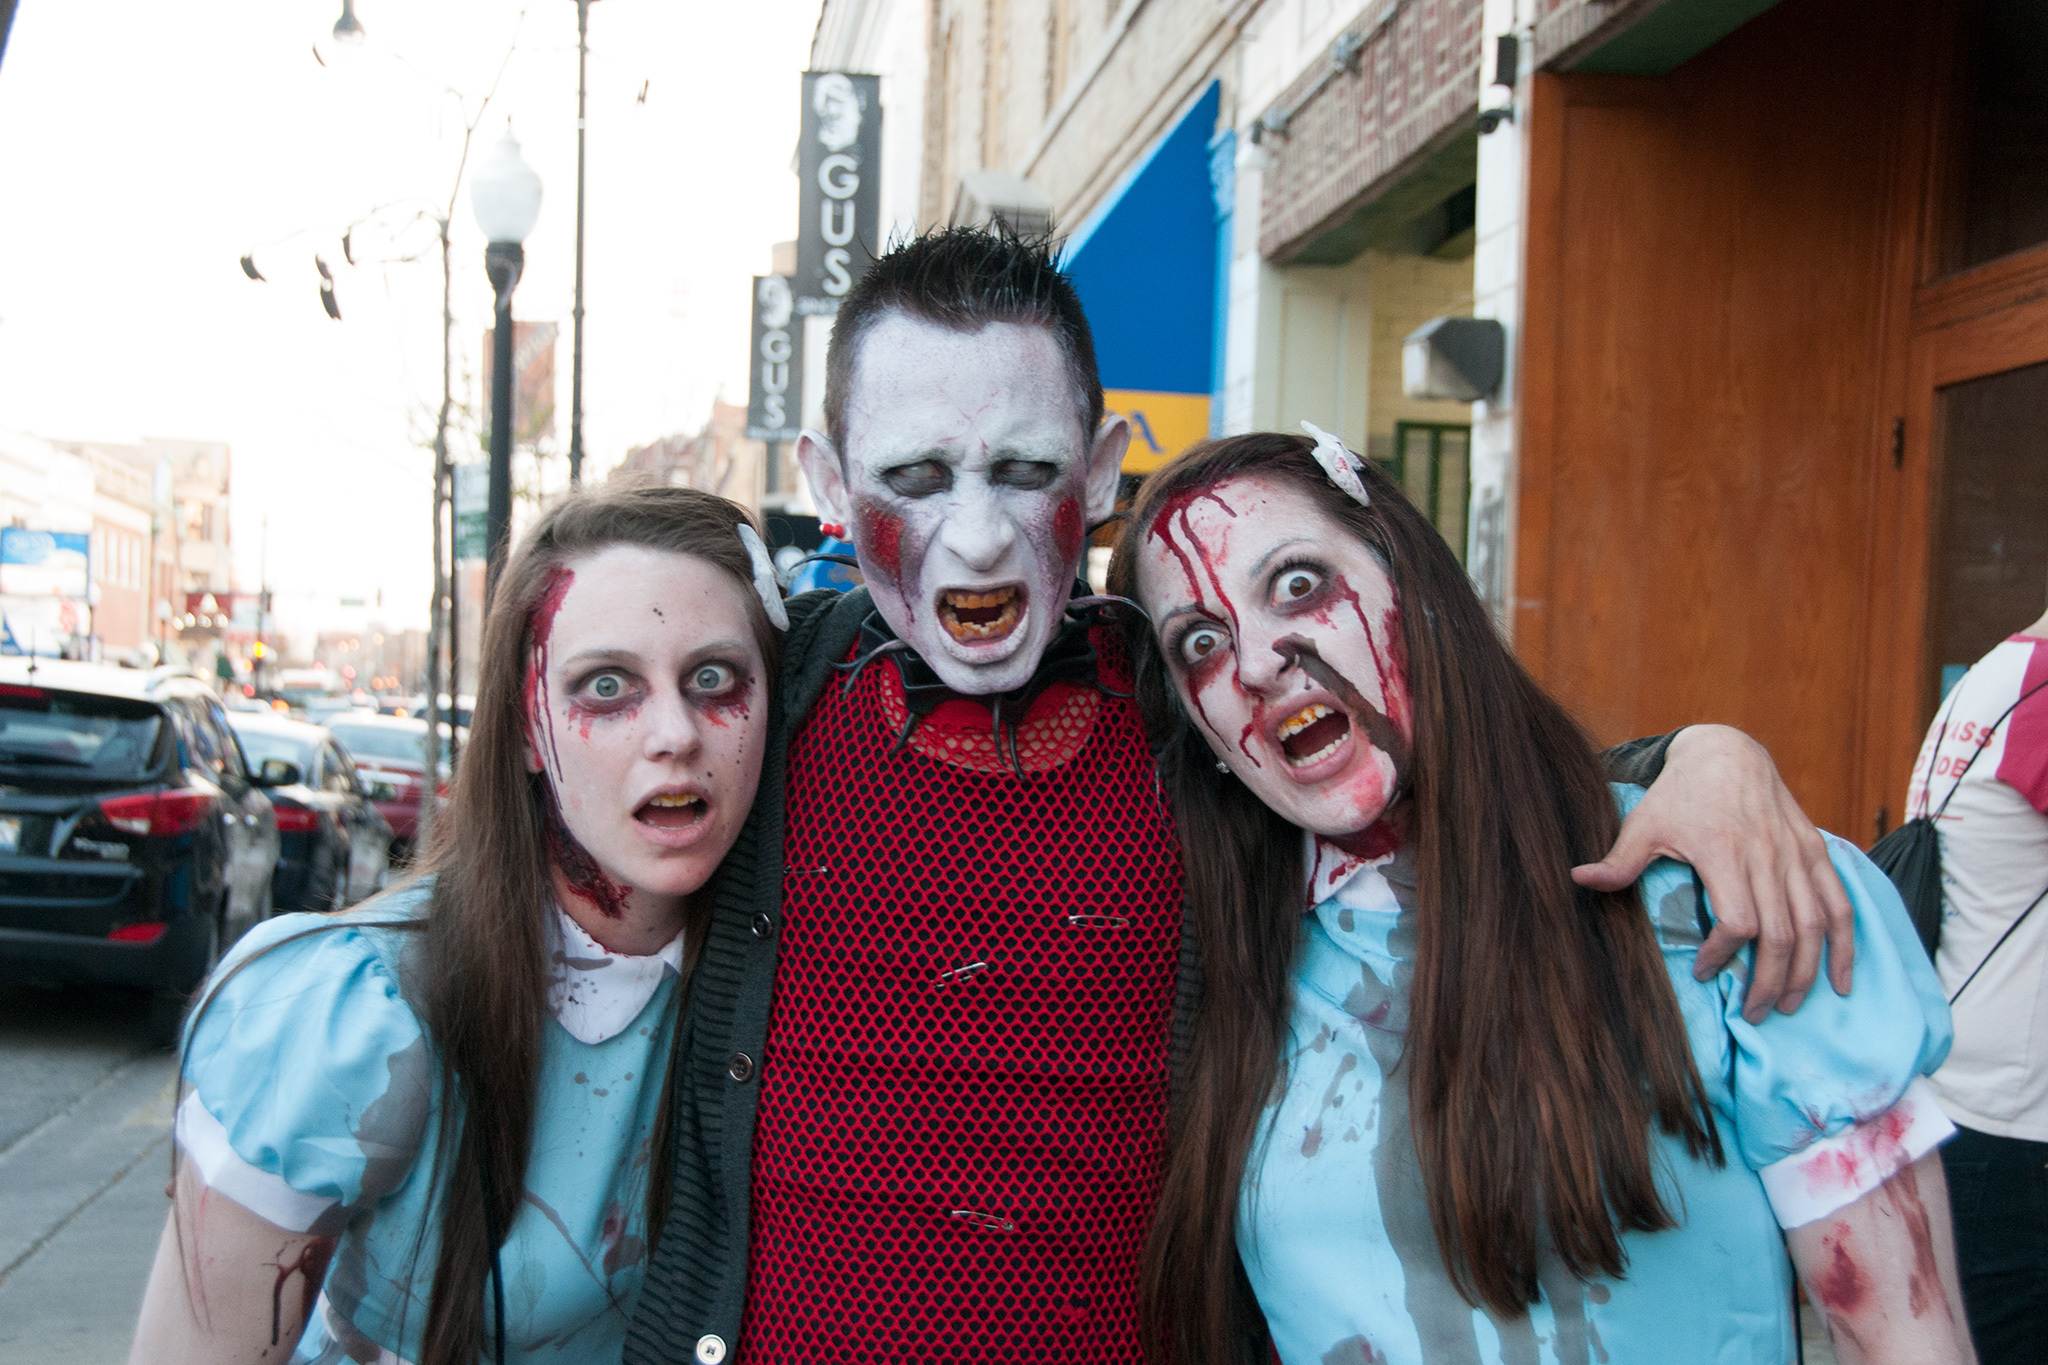 The undead shamble through the streets and bars of Andersonville during the Chicago Zombie Pub Crawl, May 2, 2015